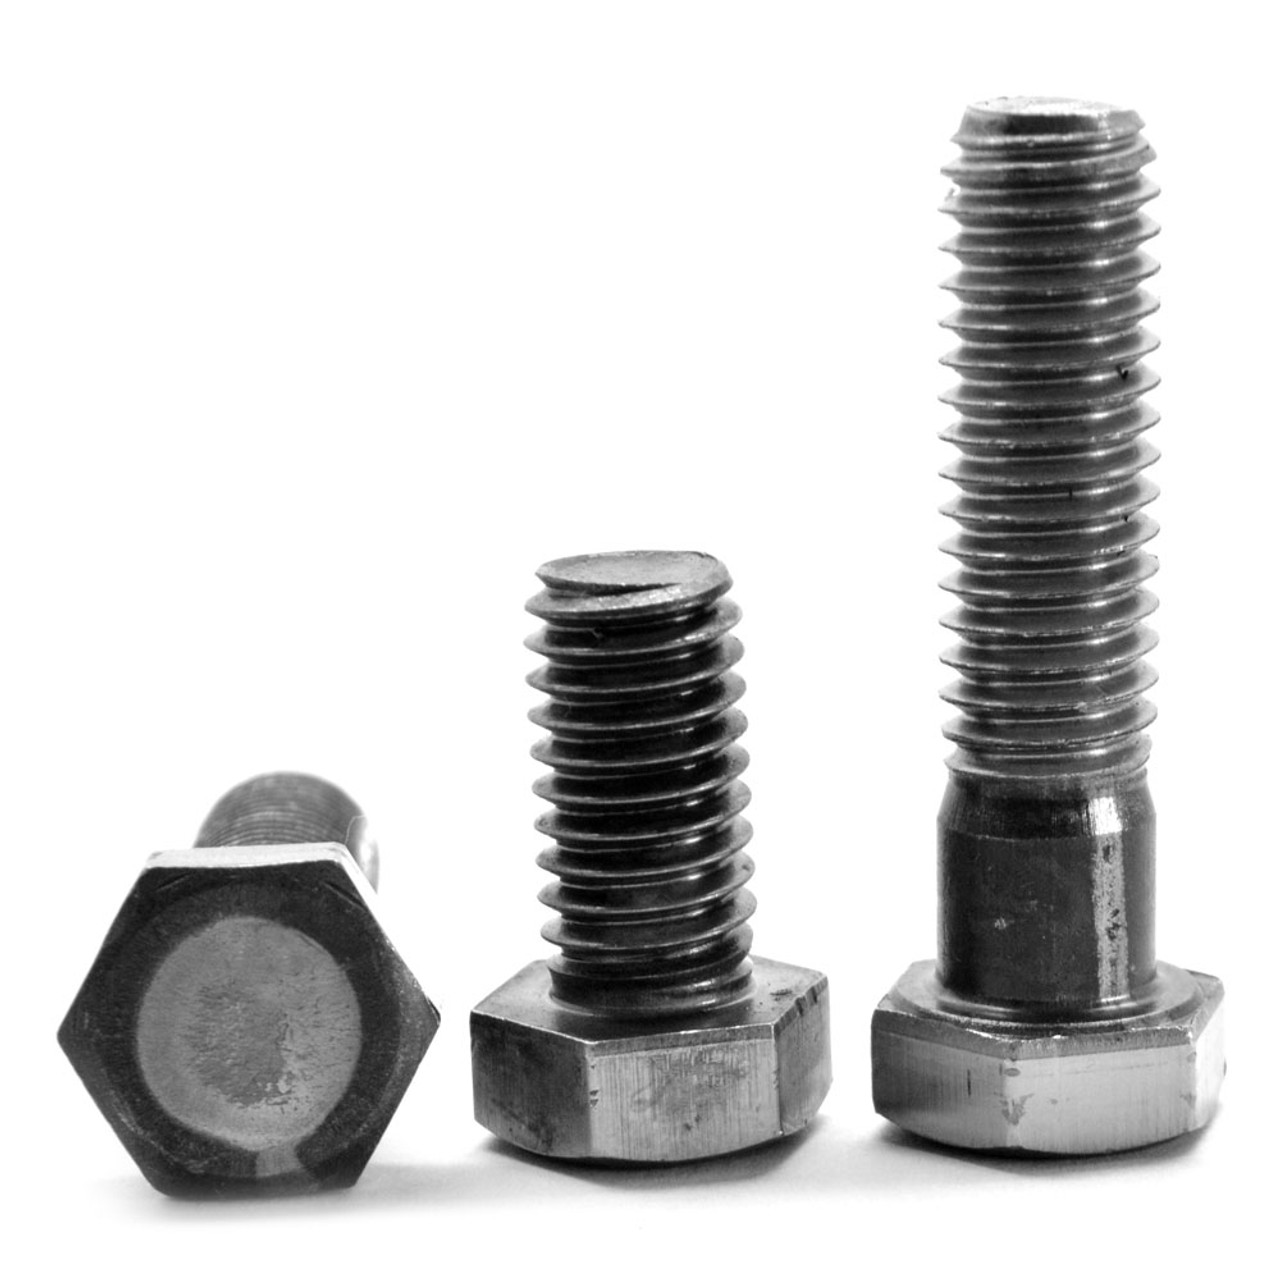 6L A325 Type 1 85 PK 1-1//8-7 Steel Structural Bolt Galvanized Finish